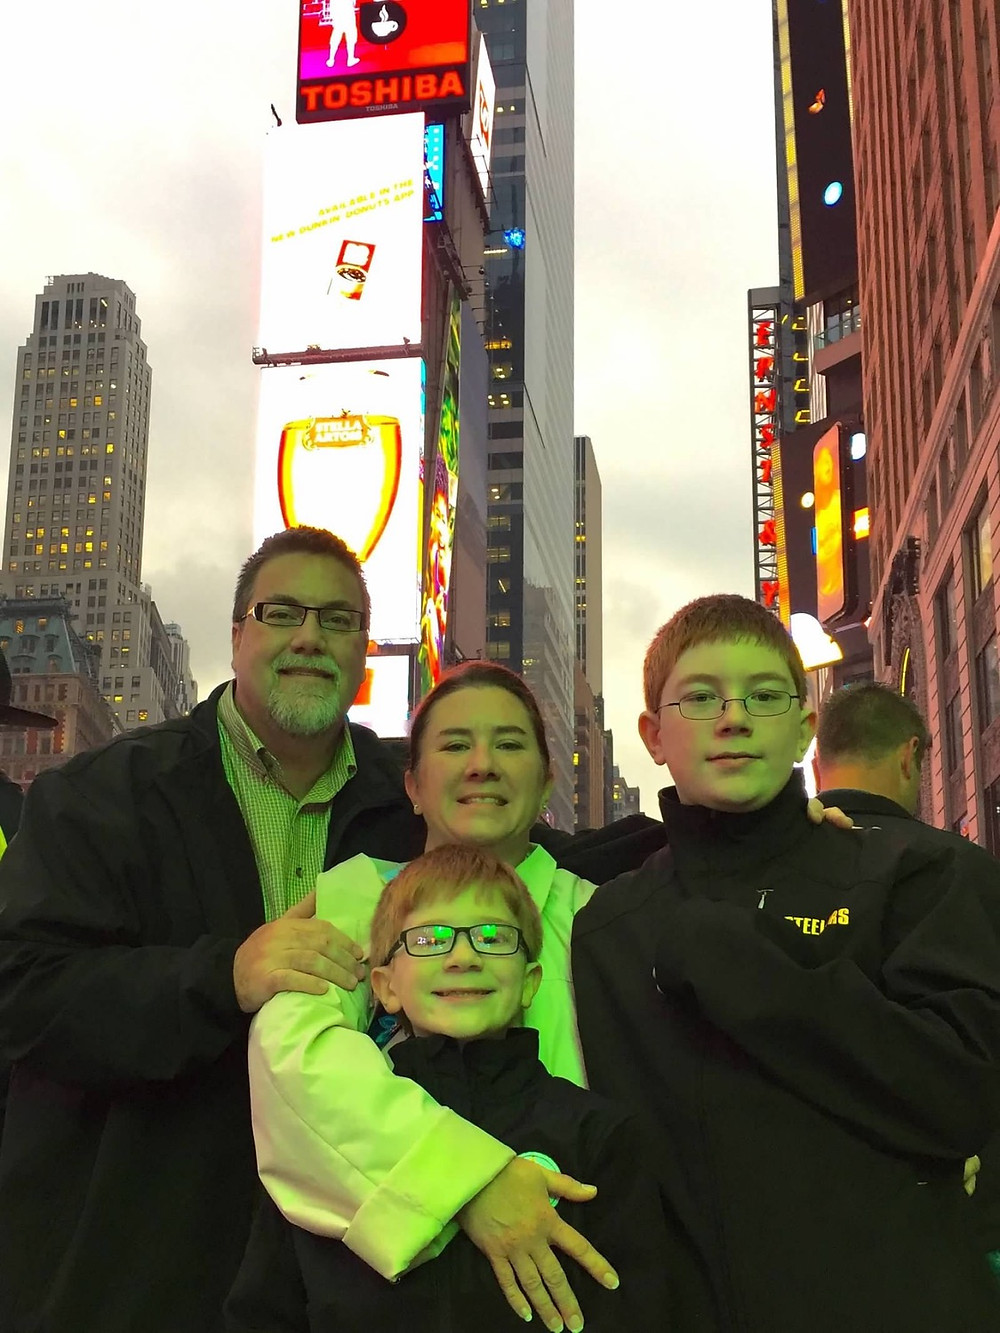 A photo of david brodosi and his family in New York